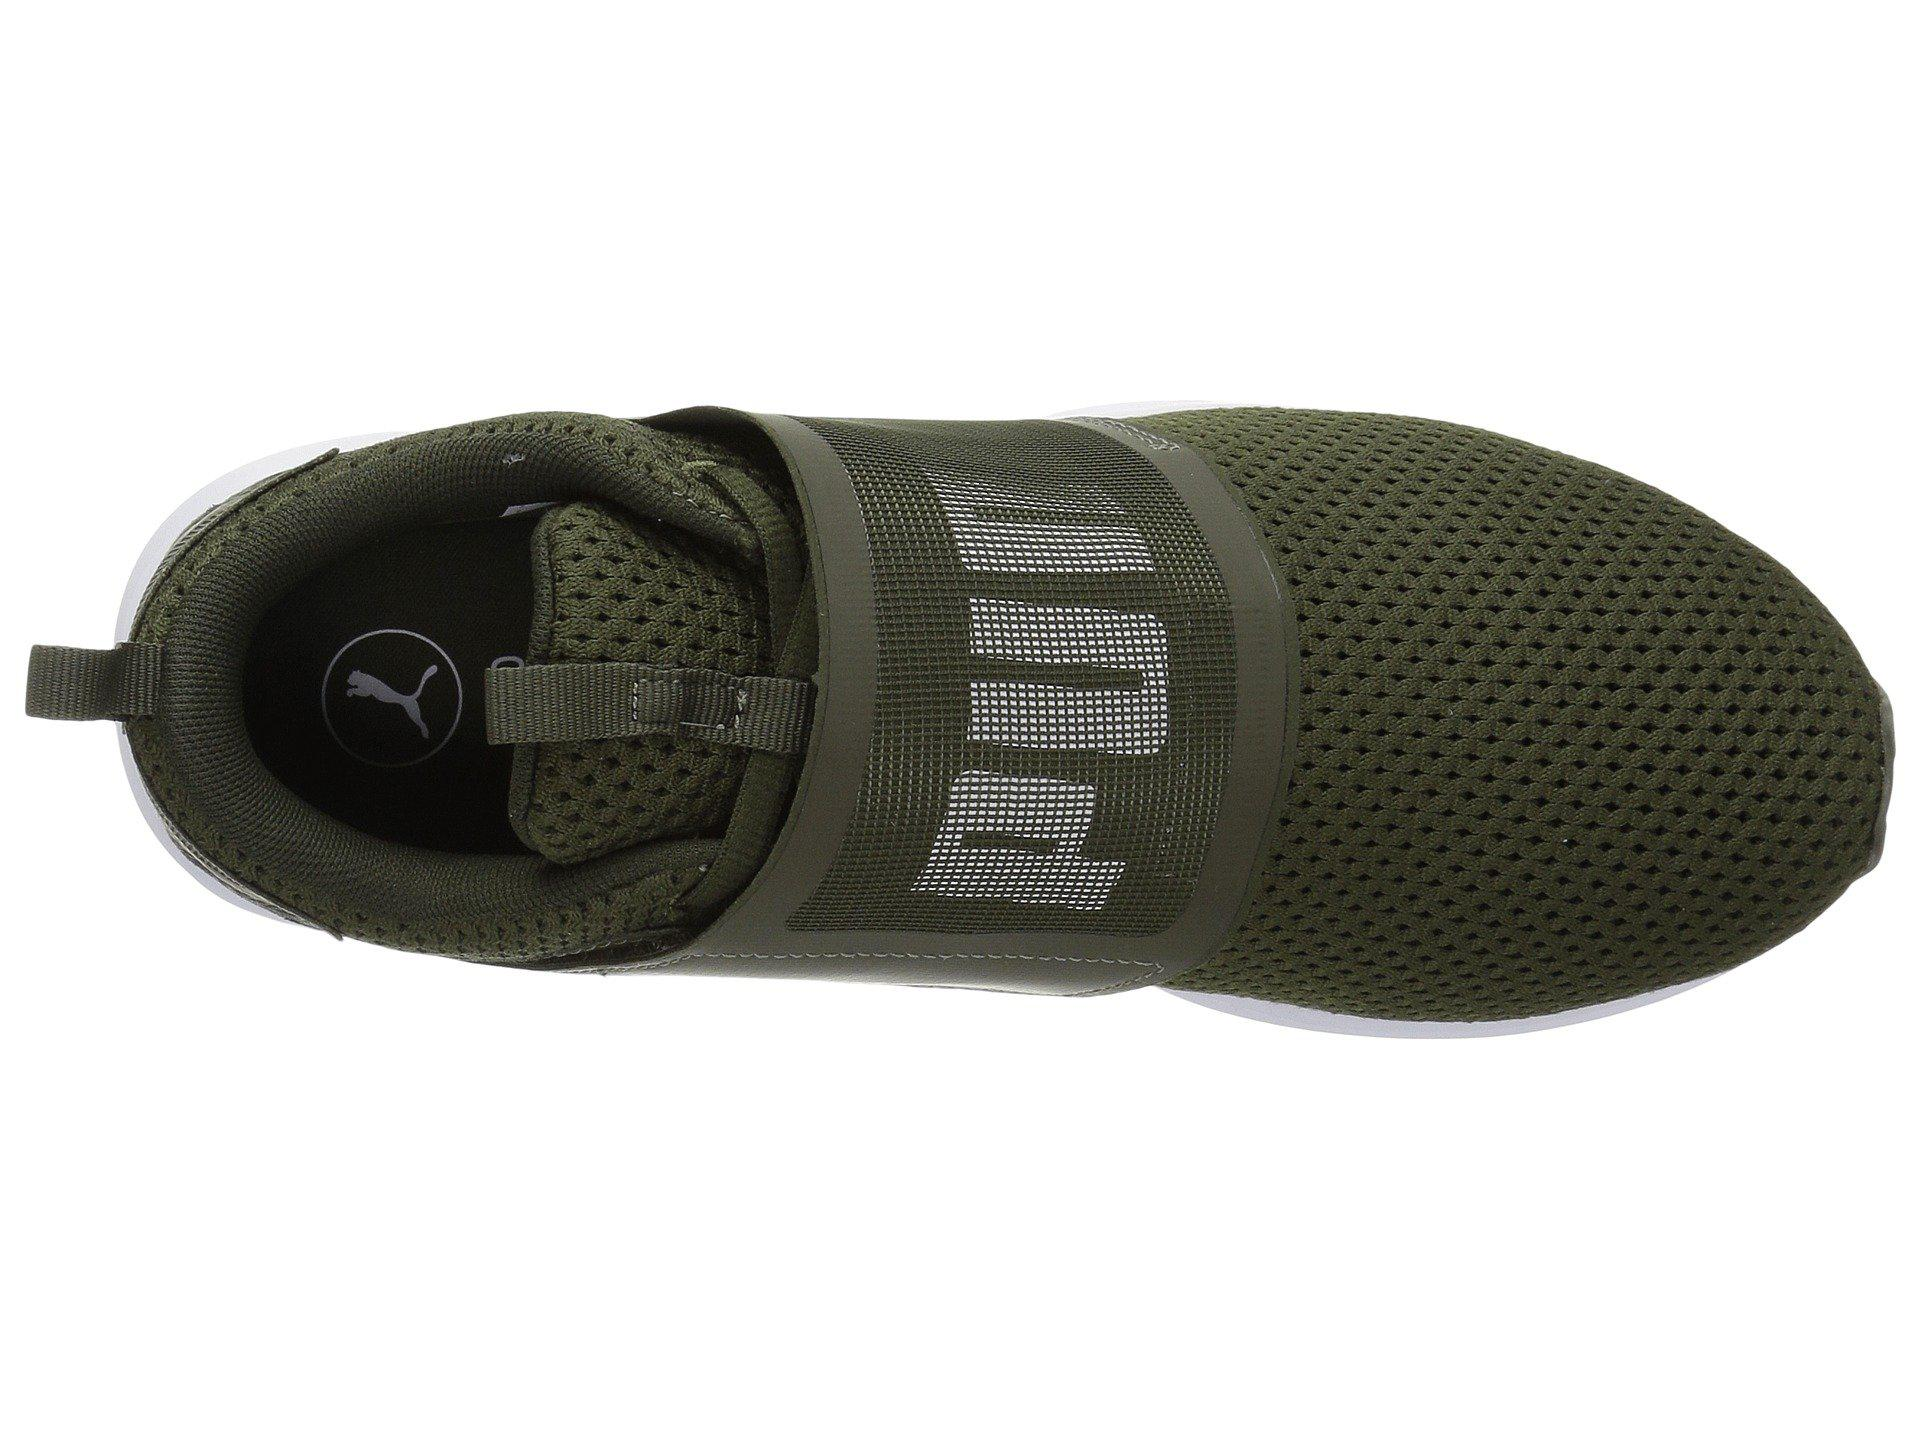 Lyst - PUMA Enzo Strap Mesh in Green for Men - Save 47% be225d2b1